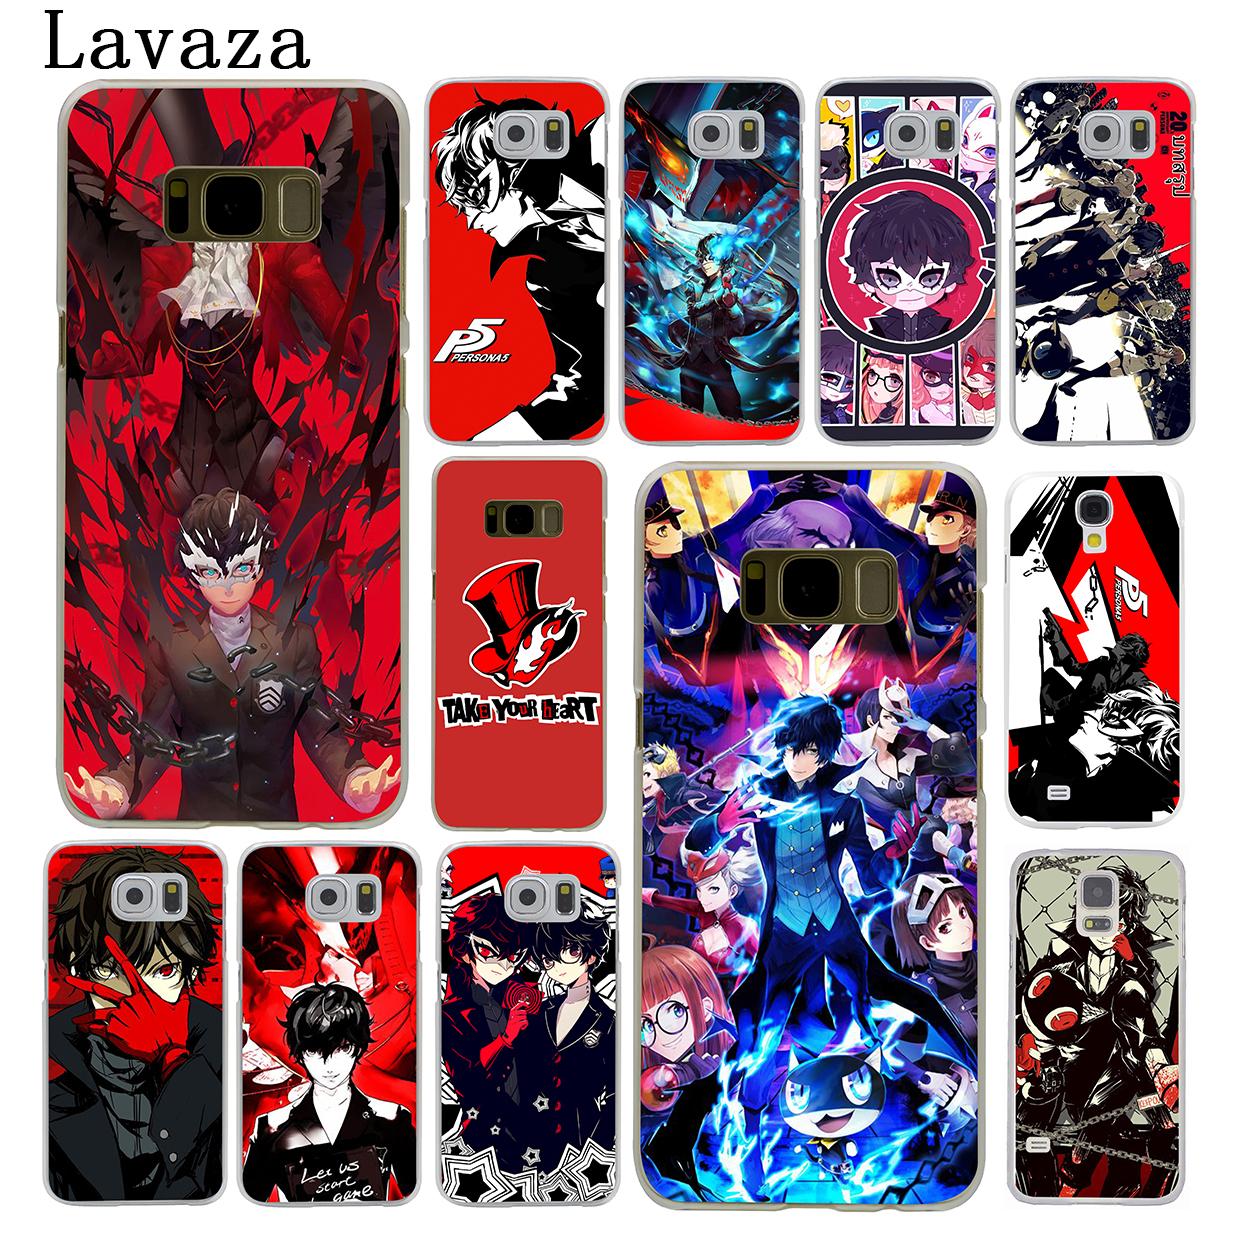 Lavaza p5 P Persona 5 Hard Phone Shell Case for Samsung Galaxy S9 S6 S7 Edge S8 Plus S3 S4 S5 Mini S2 Cover